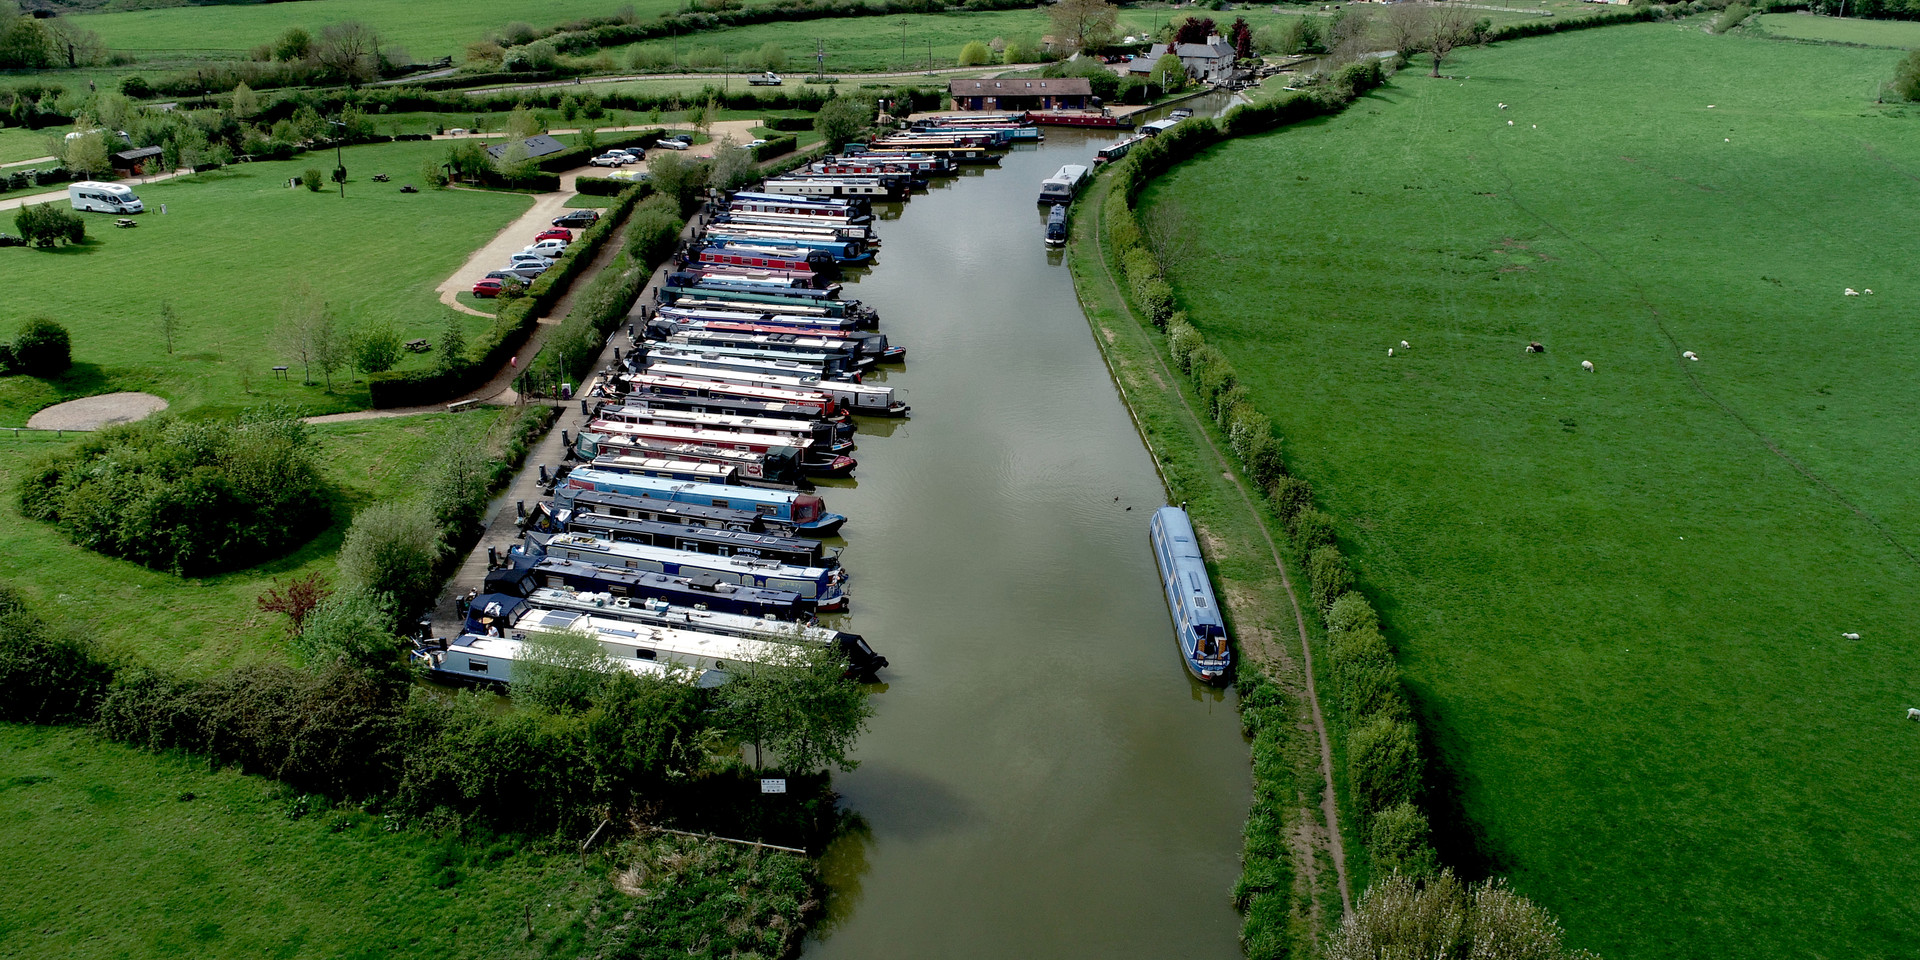 Canal barges in Marina